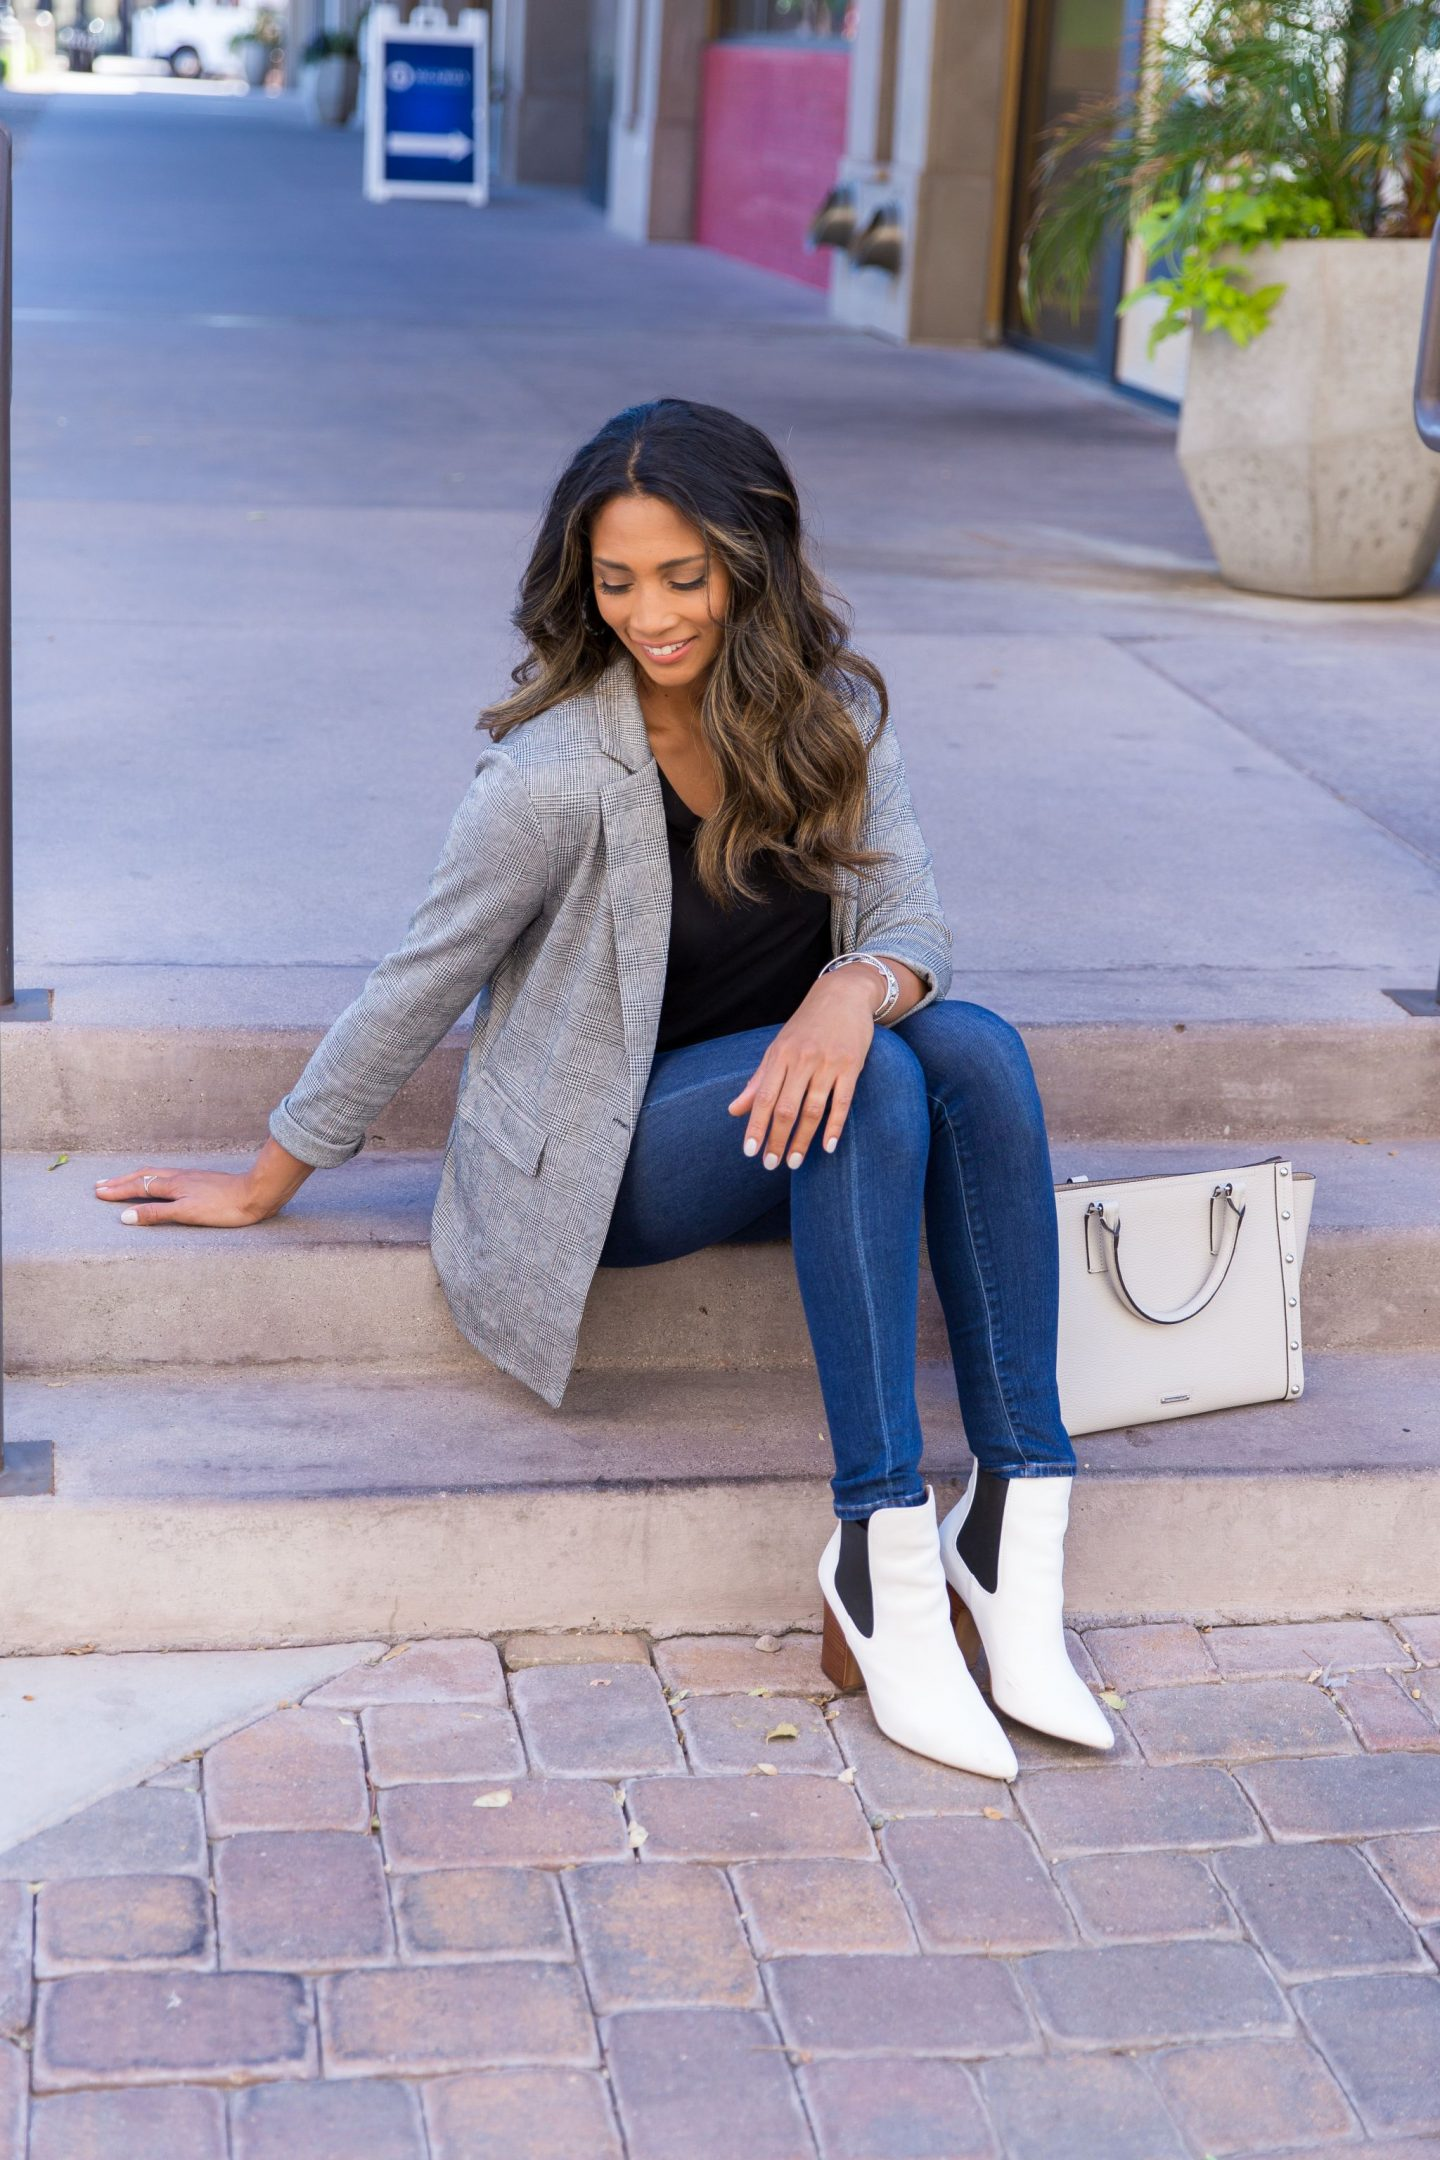 FALL FASHION, FALL BOOTS, OUTFIT INSPIRATION, WHAT TO WEAR, STYLE, BLOGGER STYLE,